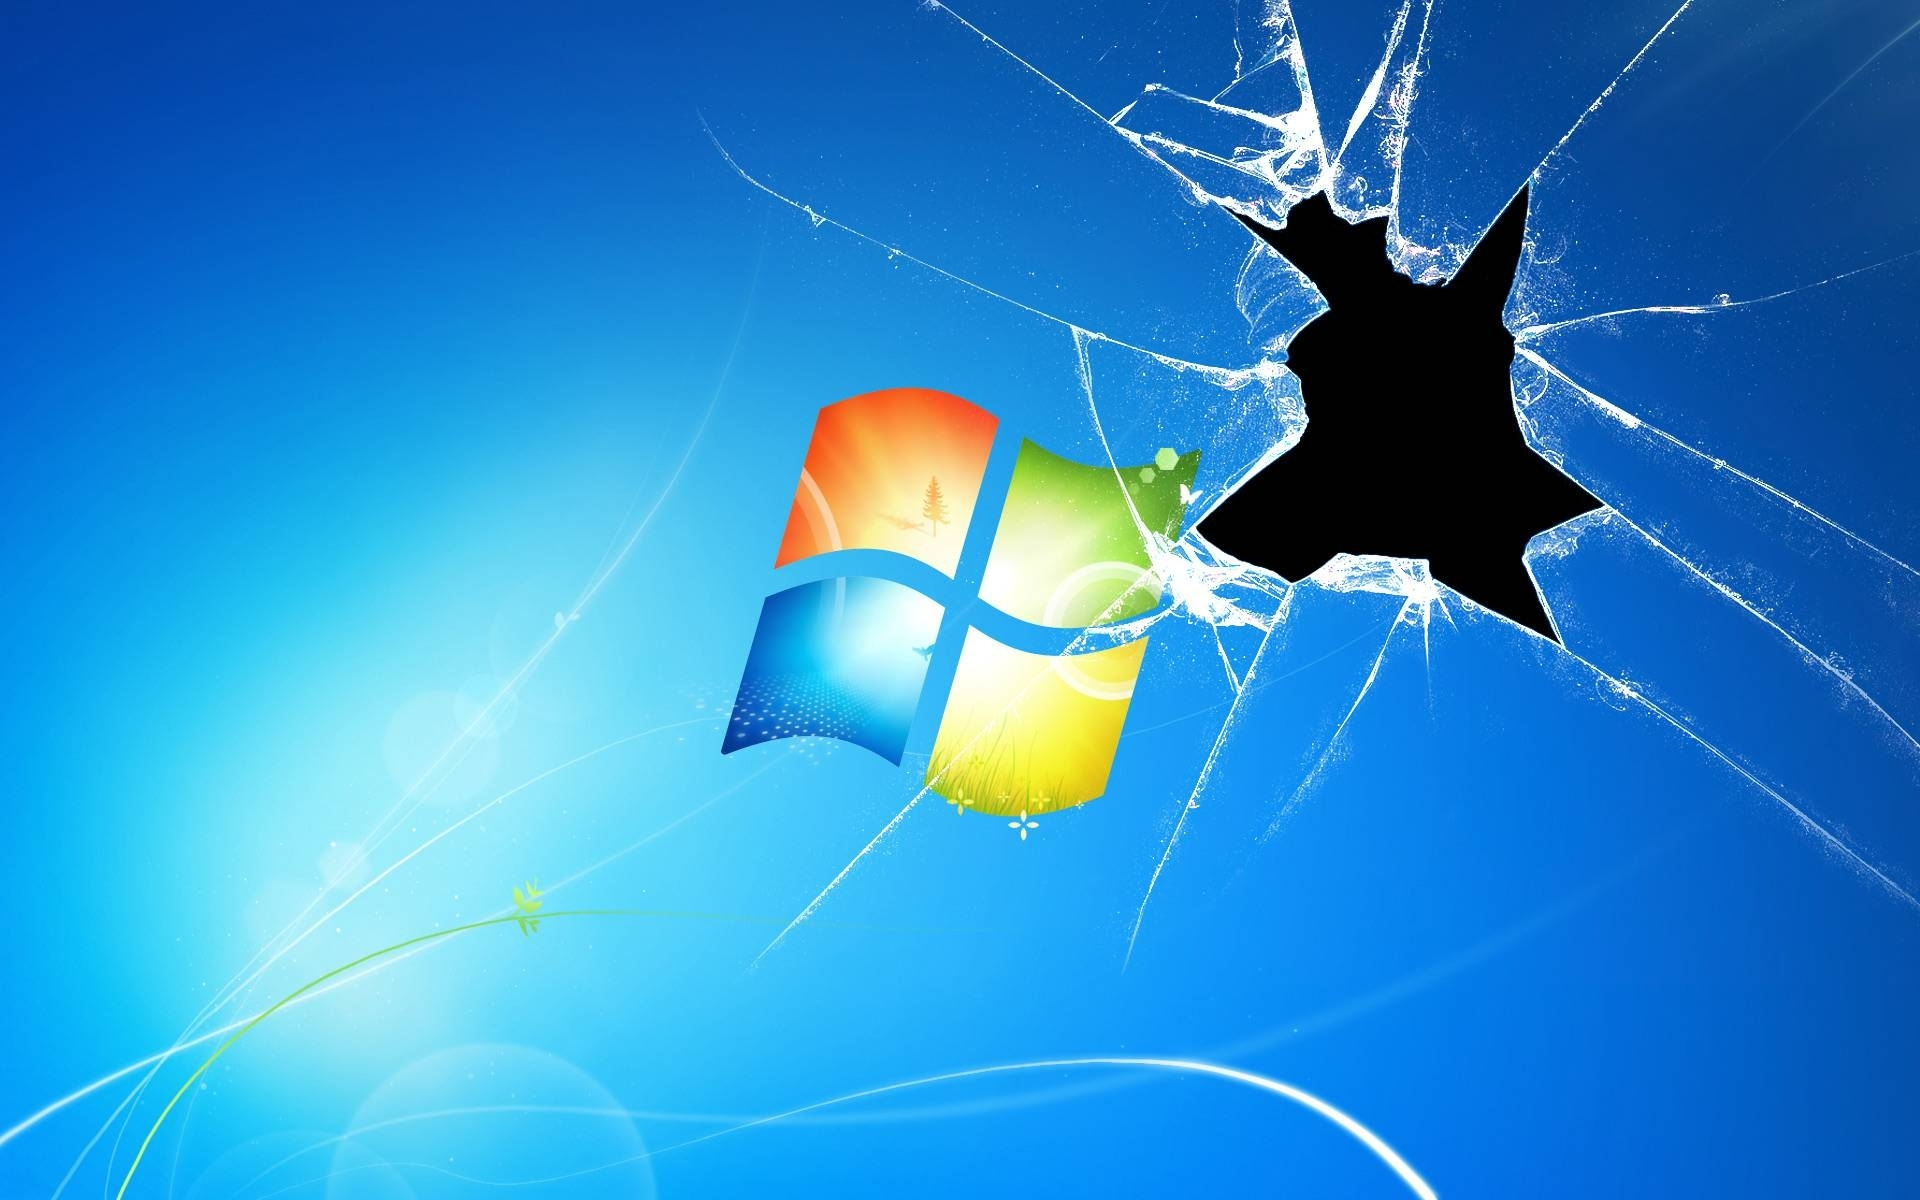 cracked screen windows exclusive hd wallpapers #2261 | wallpapers